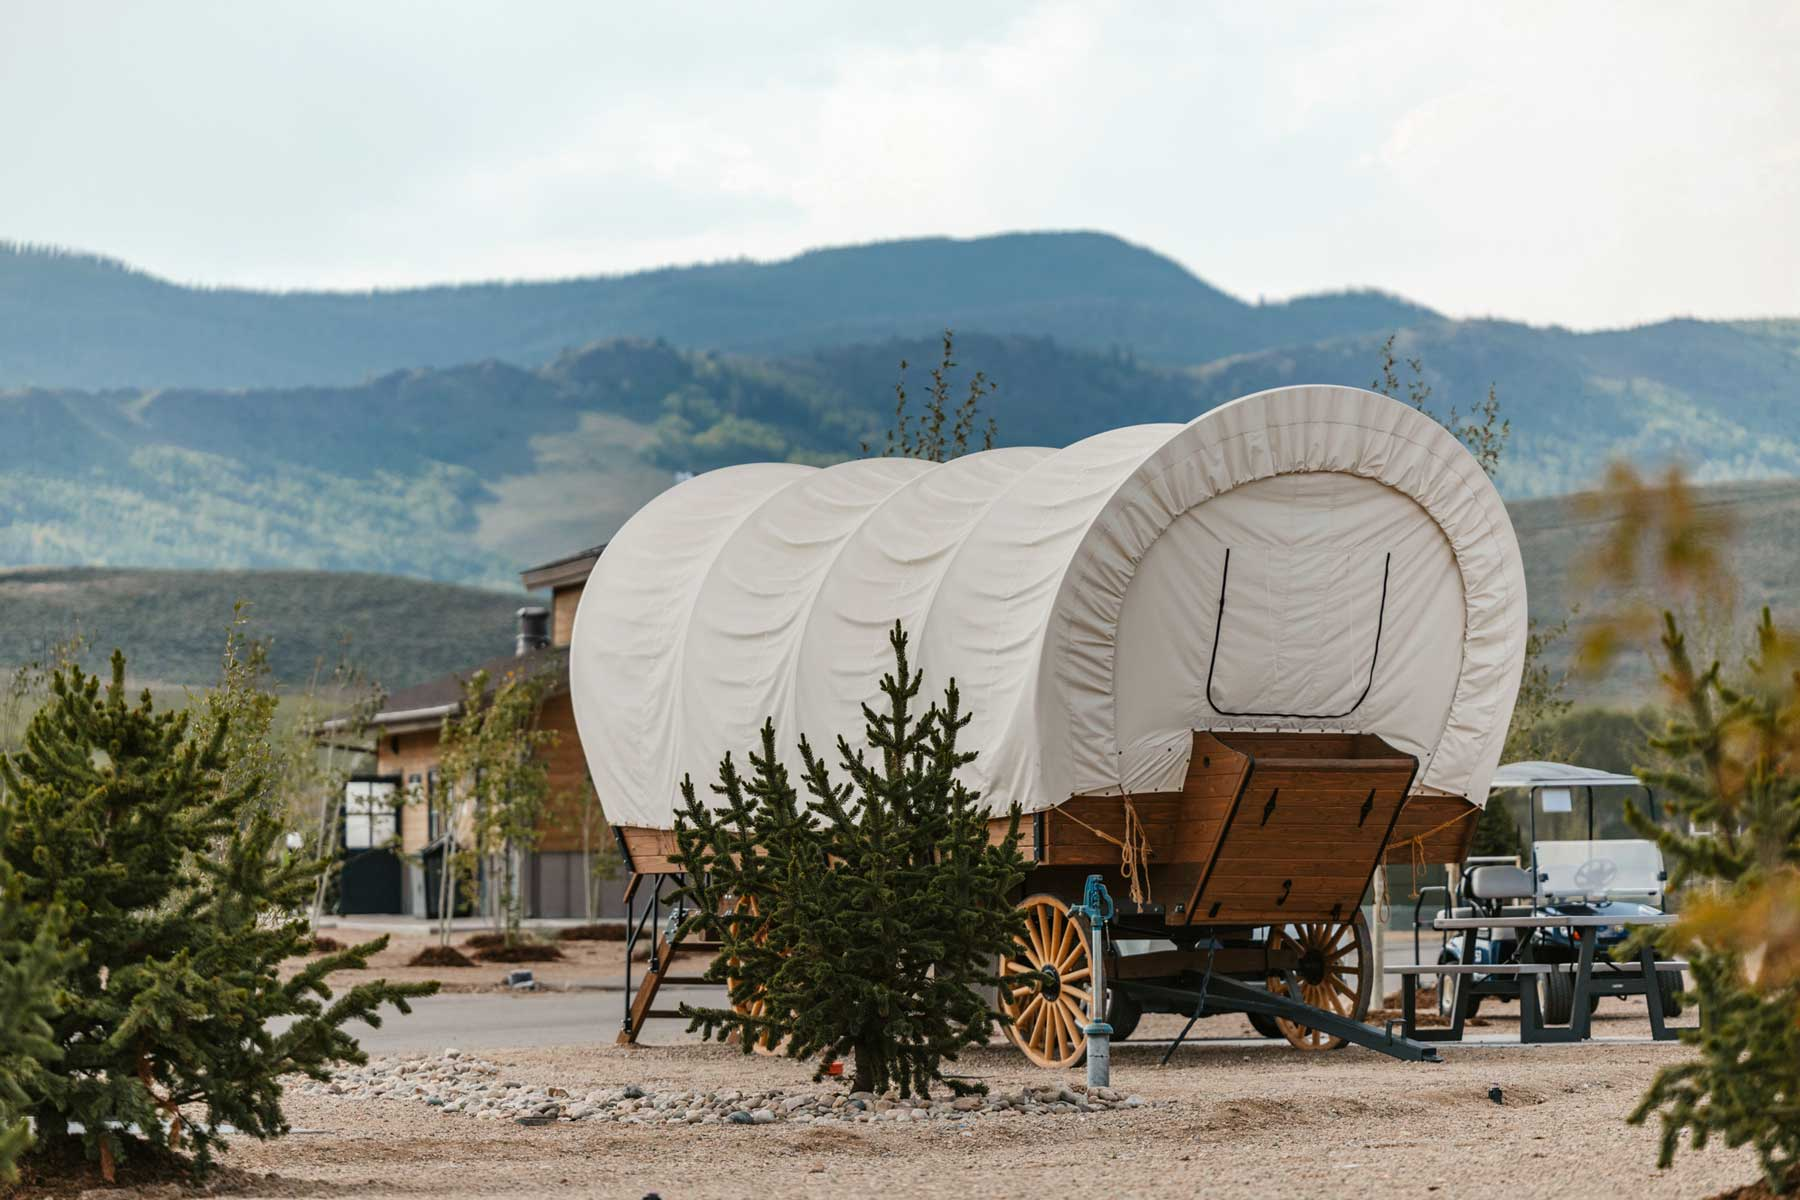 Covered wagon at RV resort in Colorado